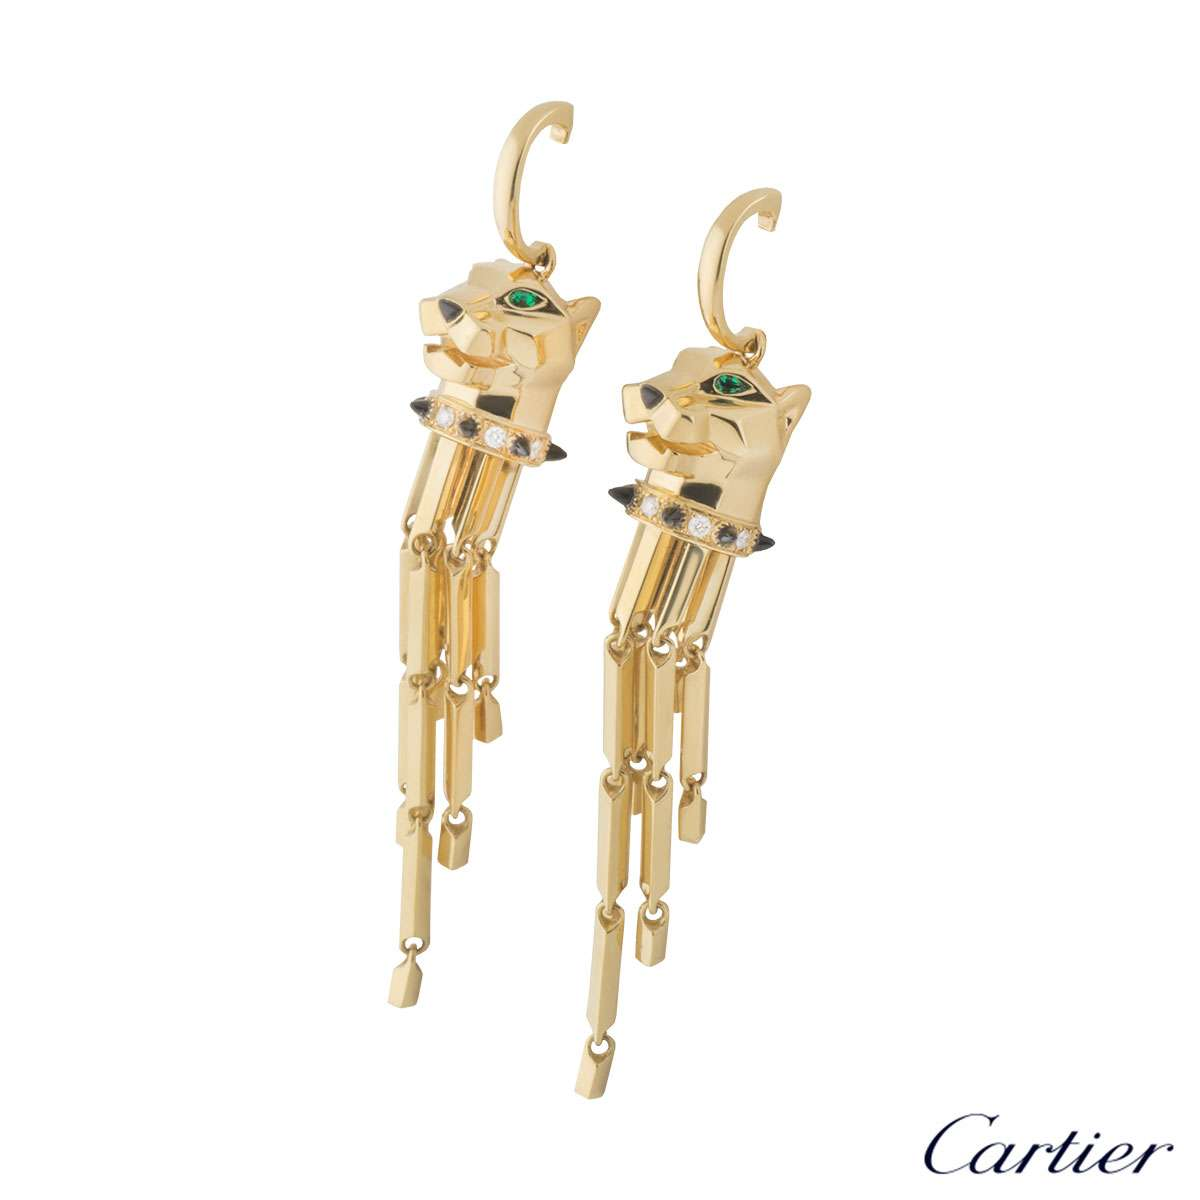 Cartier Yellow Gold Panthere Earrings